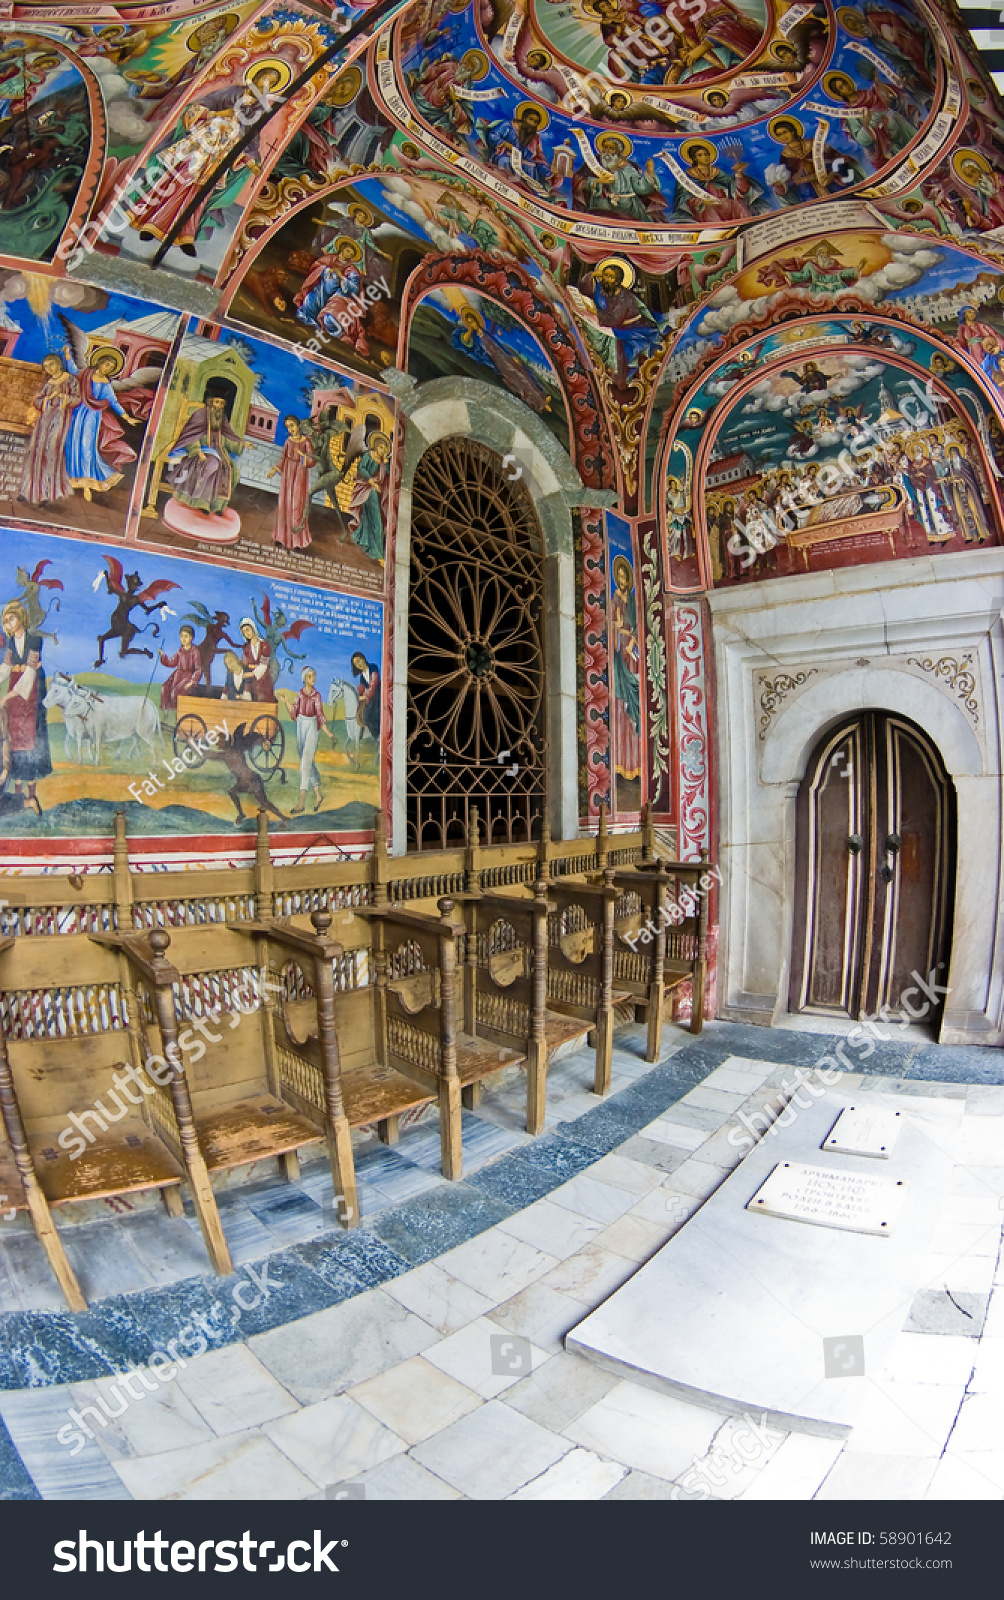 Christian murals rila monastery bulgaria stock photo for Christian mural